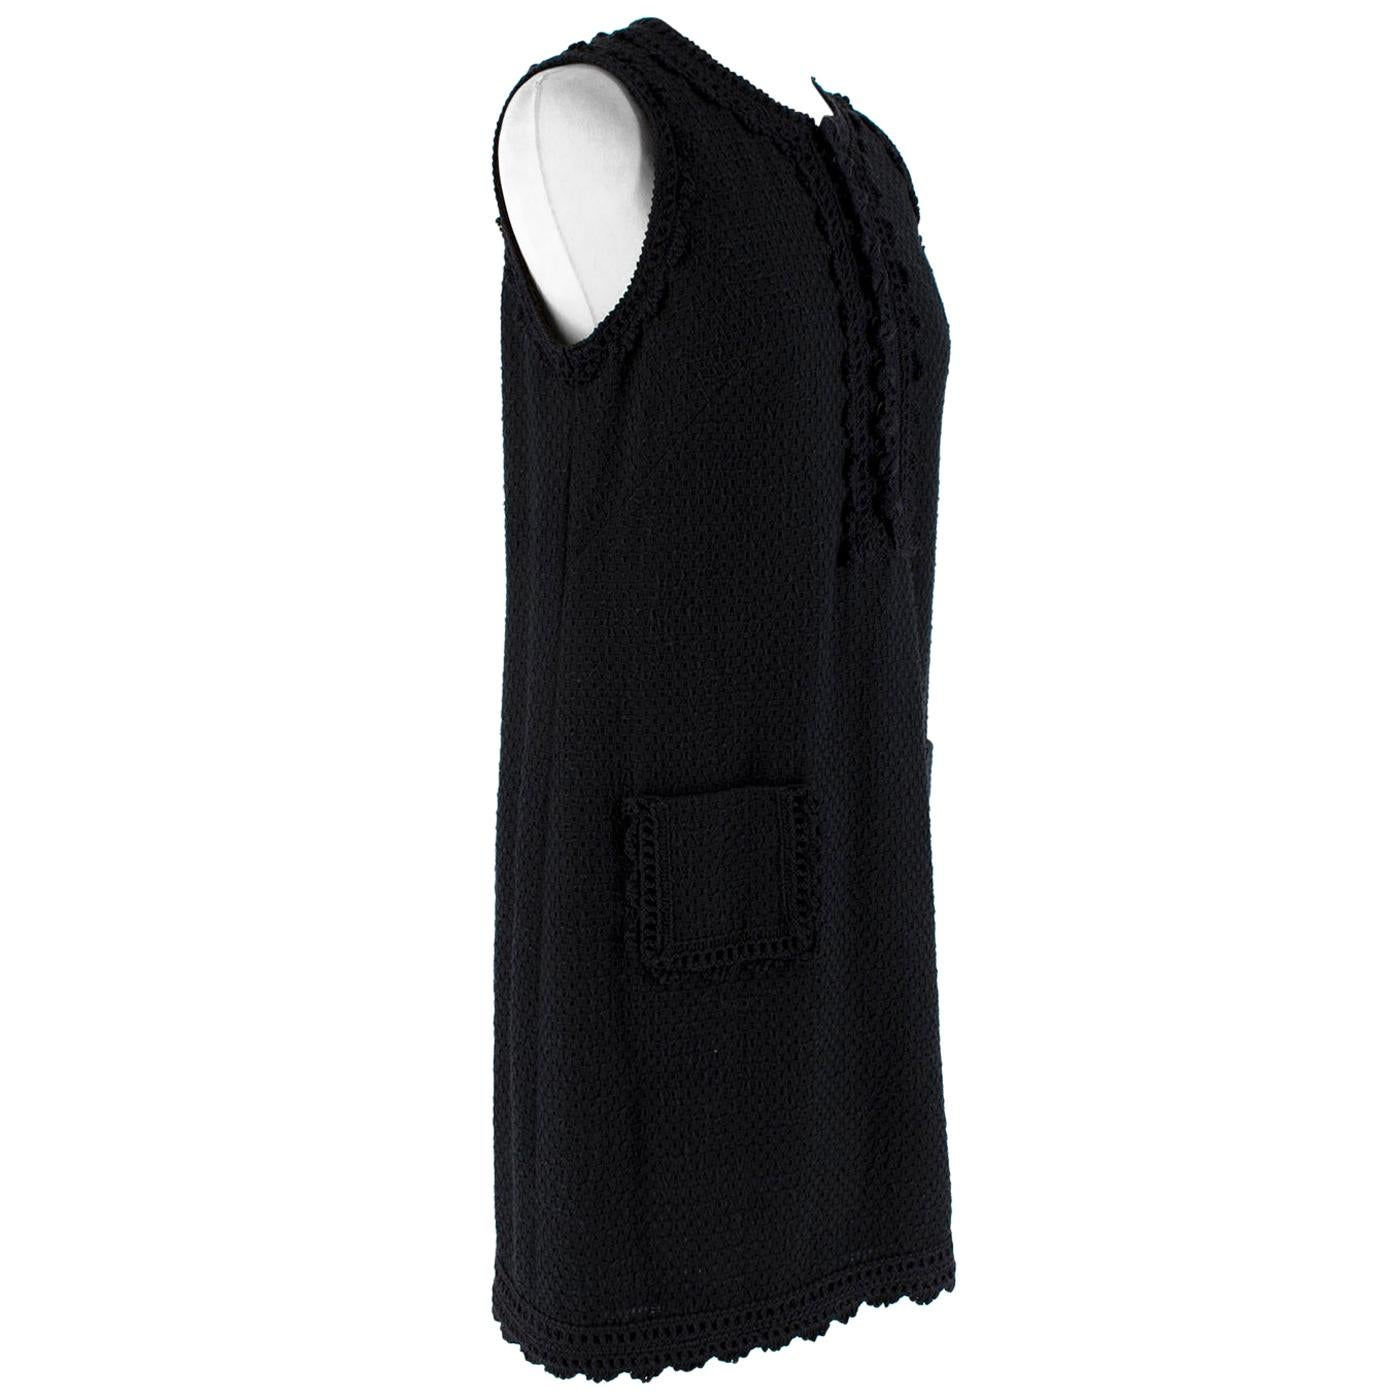 Andrew GN Black Sleeveless Textured Cotton Dress - Size US6